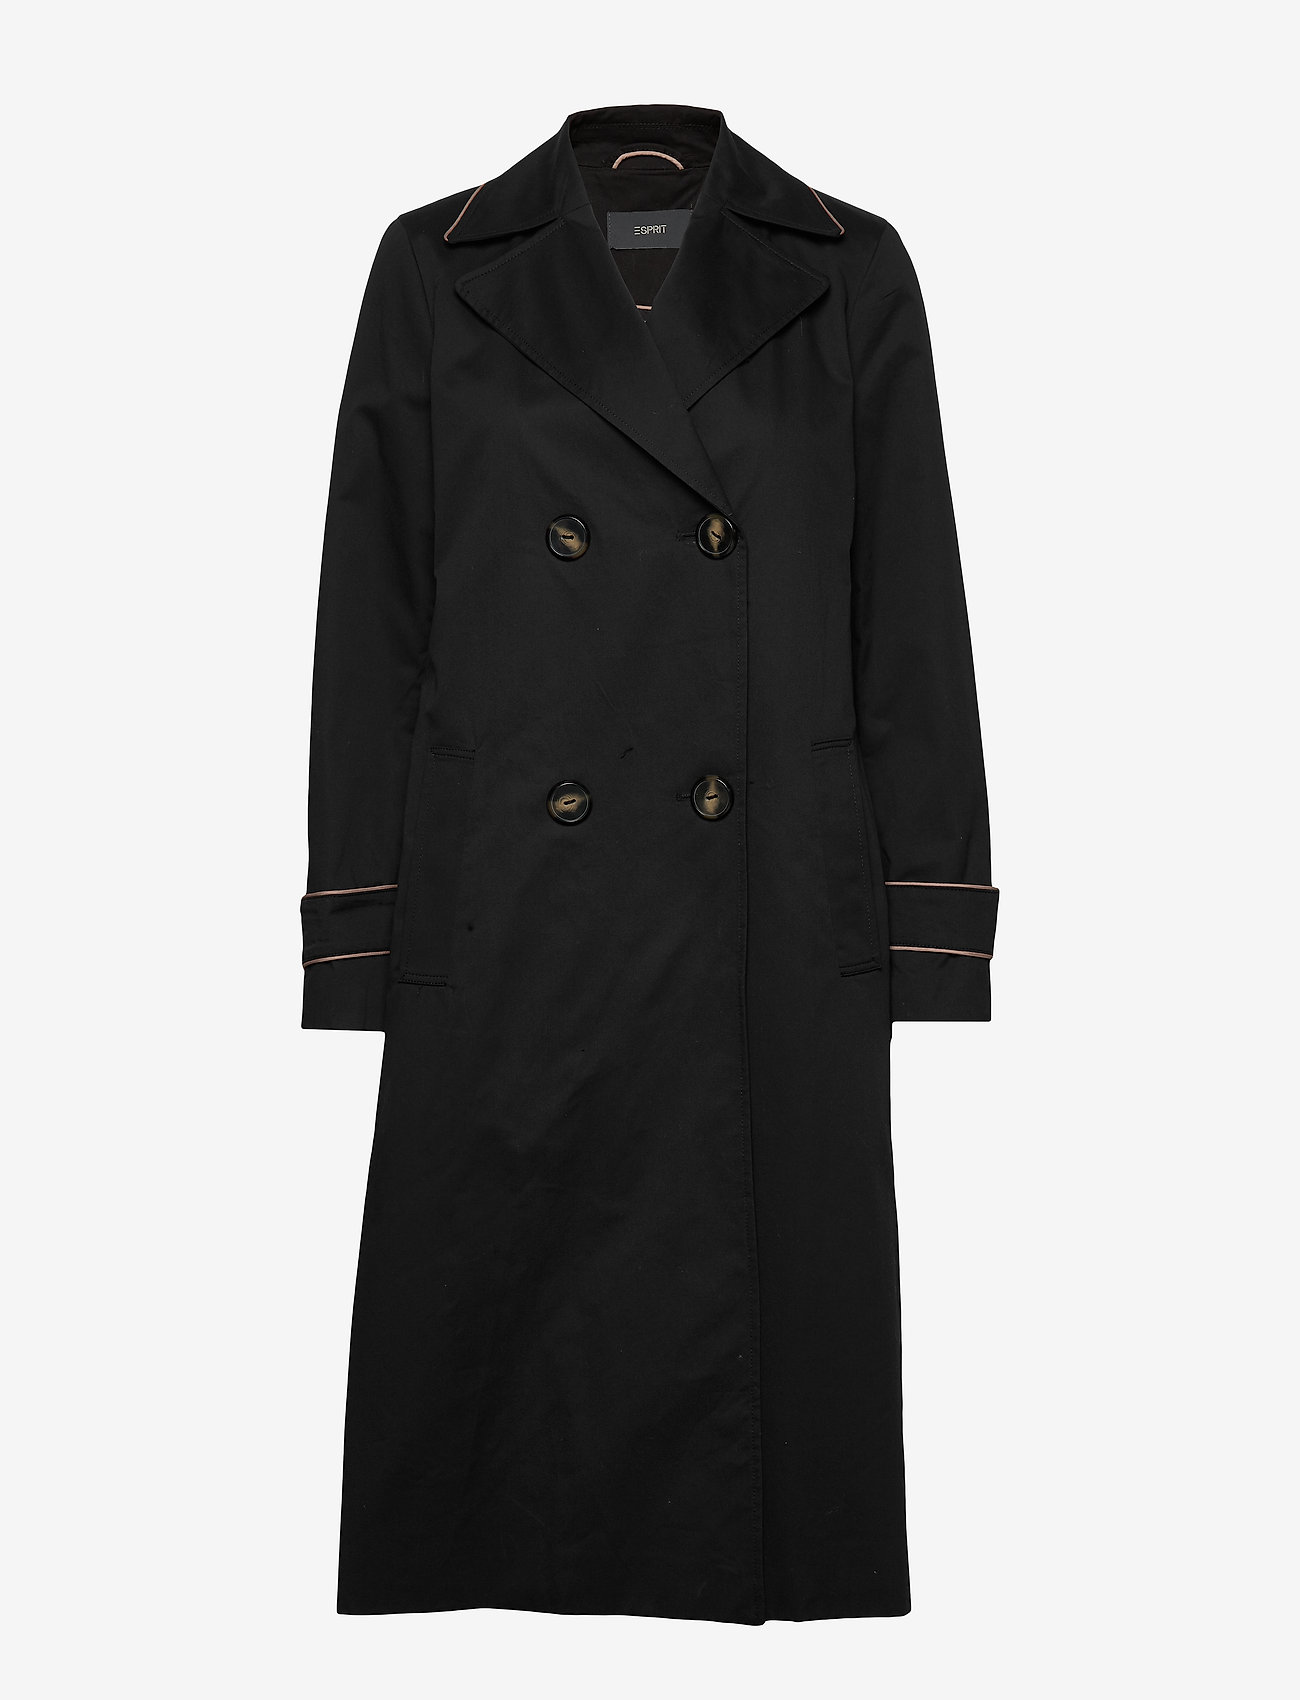 Coats Woven (Black) (959.99 kr) - Esprit Collection